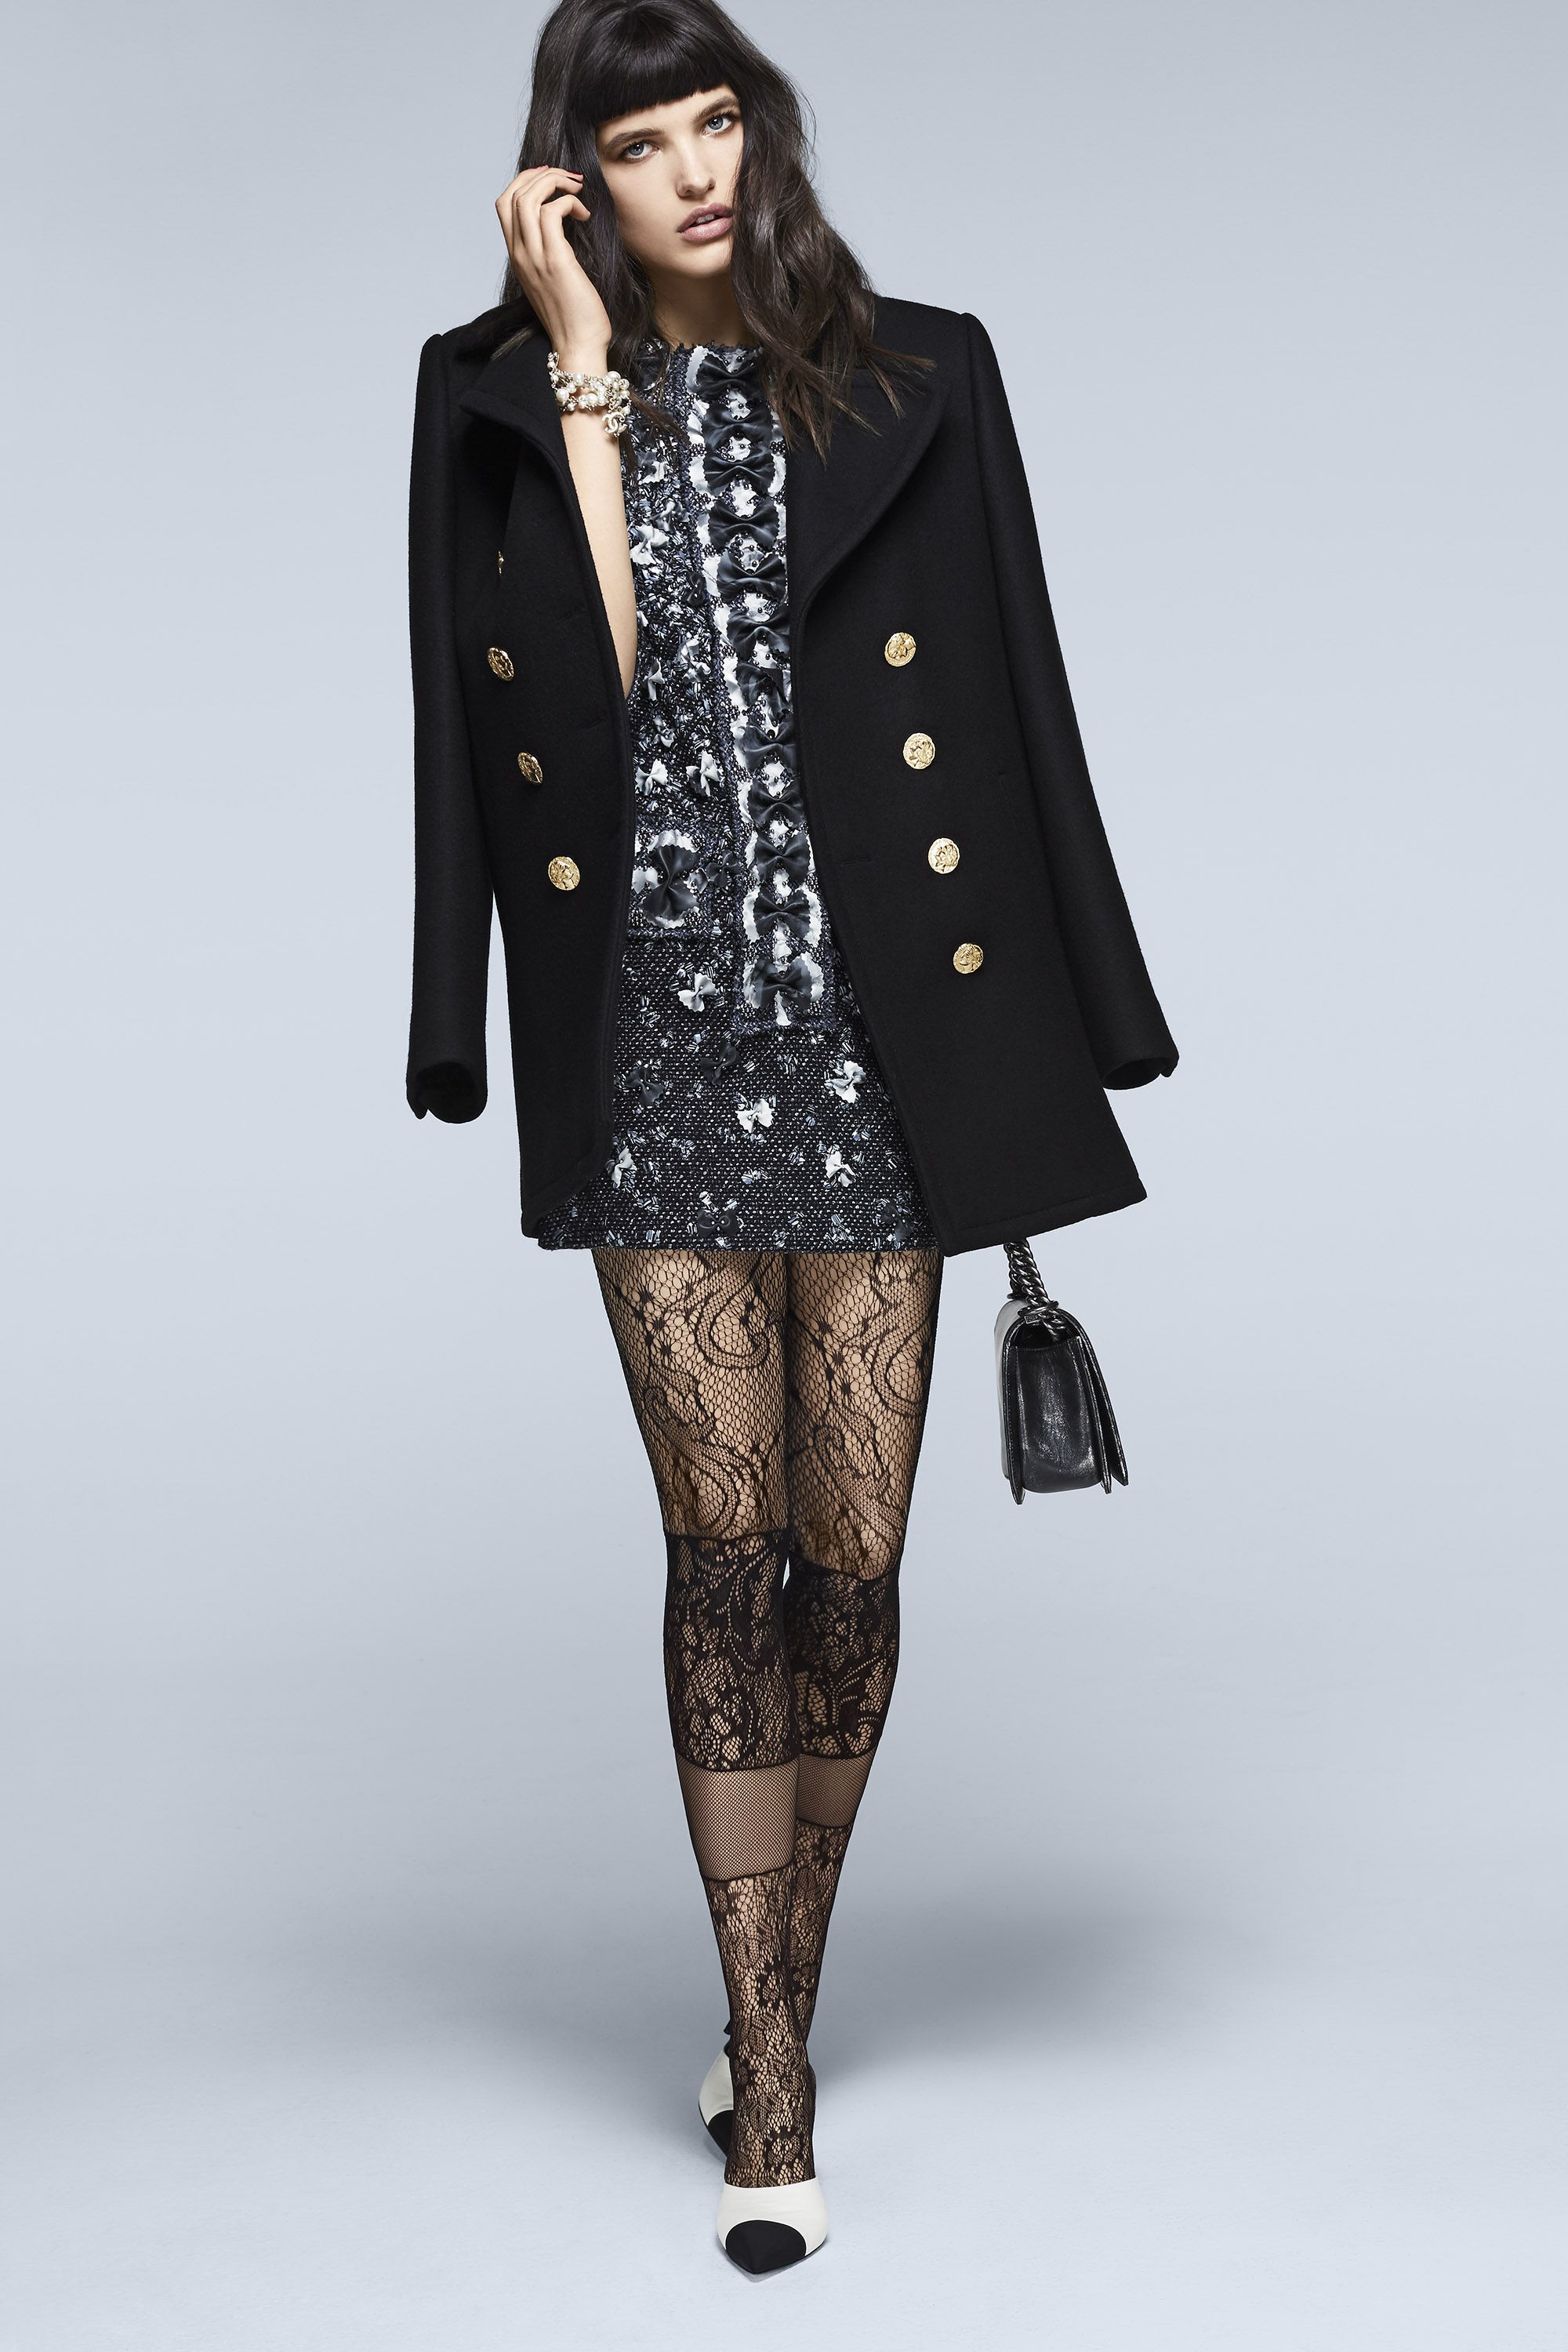 "<p><strong>Chanel </strong>coat, $5,850, tunic, $36,600, necklace (worn as bracelet), $1,475, bag, $7,500, tights, $375, and shoes, $1,100, 800-550-0005.</p><p><strong>BEAUTY BAZAAR: </strong><a href=""http://www.ulta.com/ulta/browse/productDetail.jsp?productId=xlsImpprod12292013"" target=""_blank"">Rusk Volumizing Mousse</a> delivers instant oomph ($18).</p>"